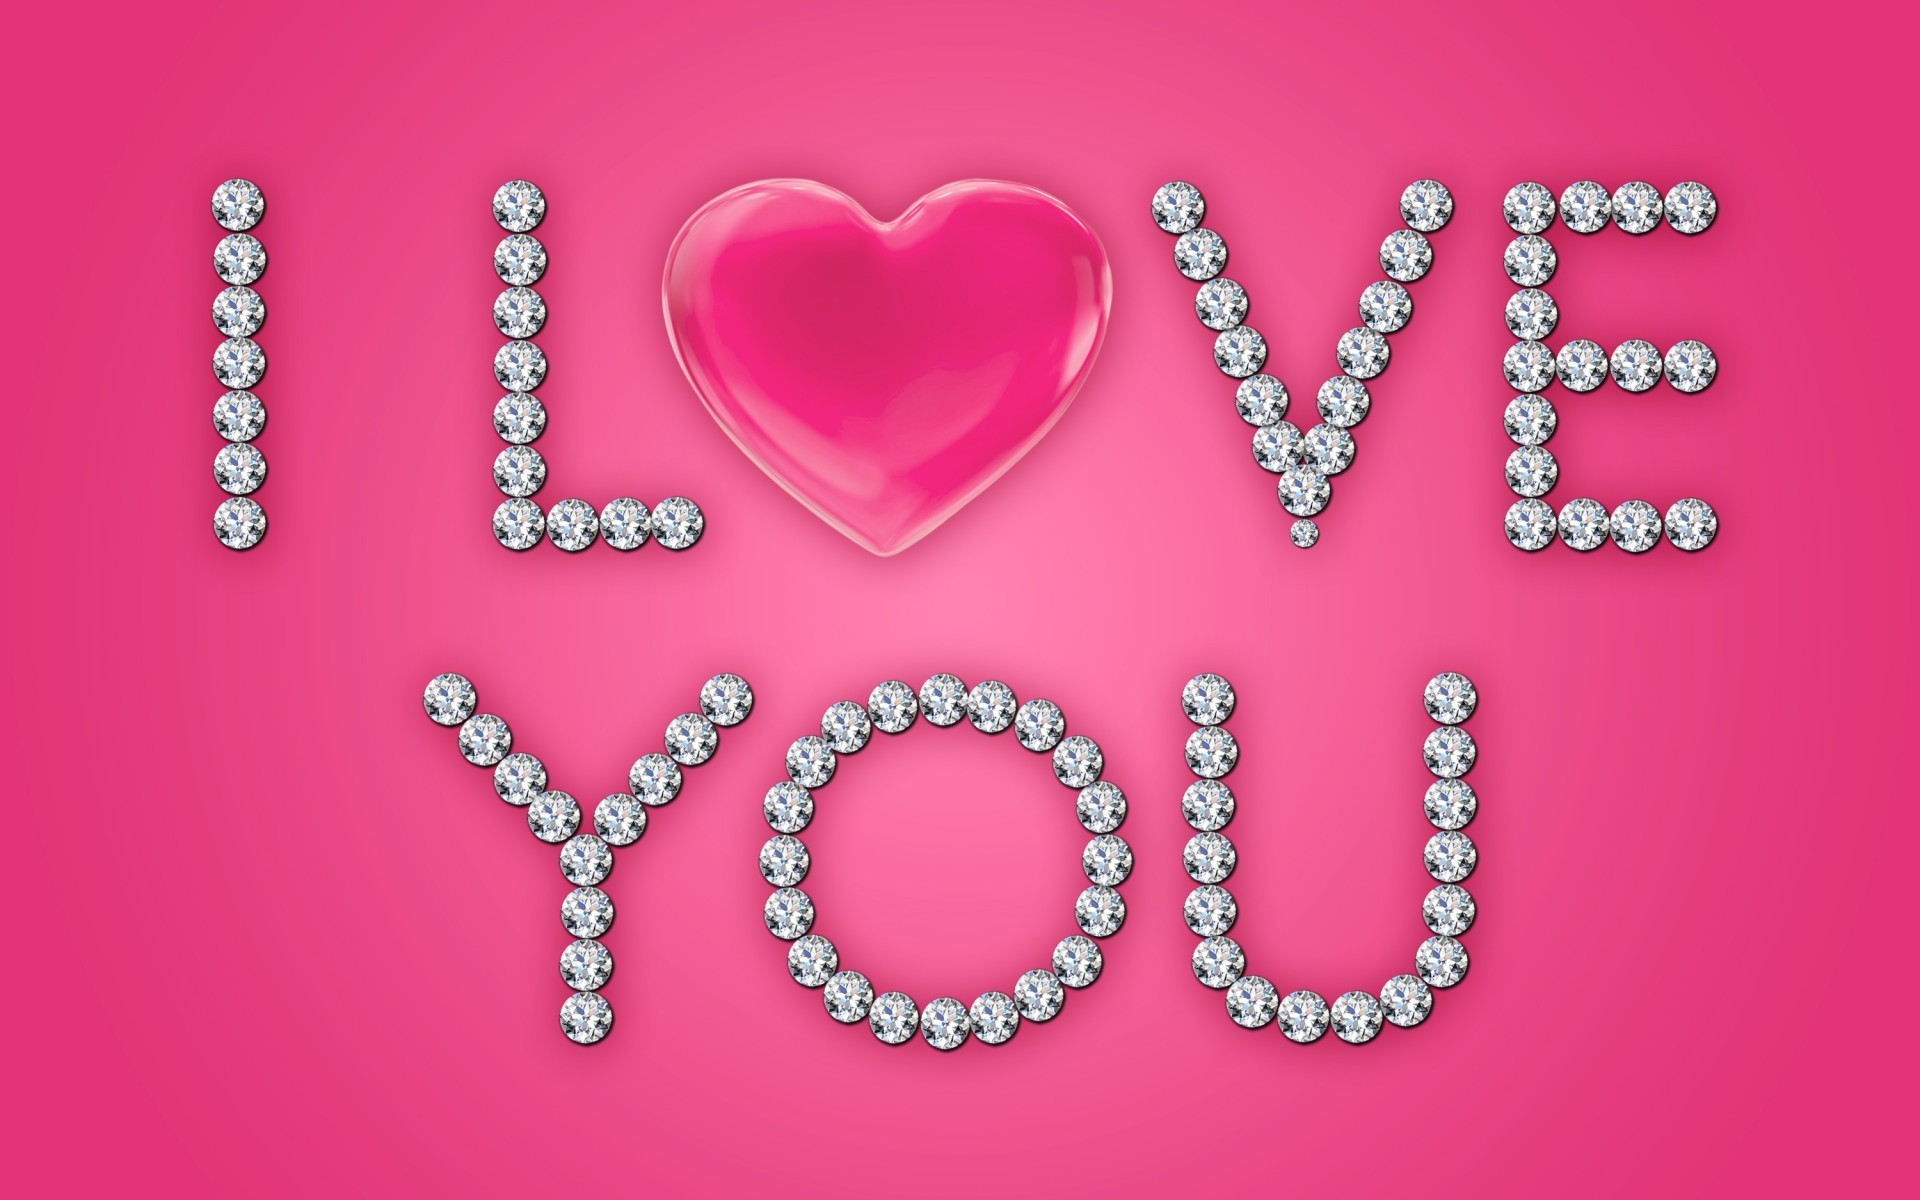 1920x1200 I Love You Diamonds Pink Heart wallpapers and stock photos